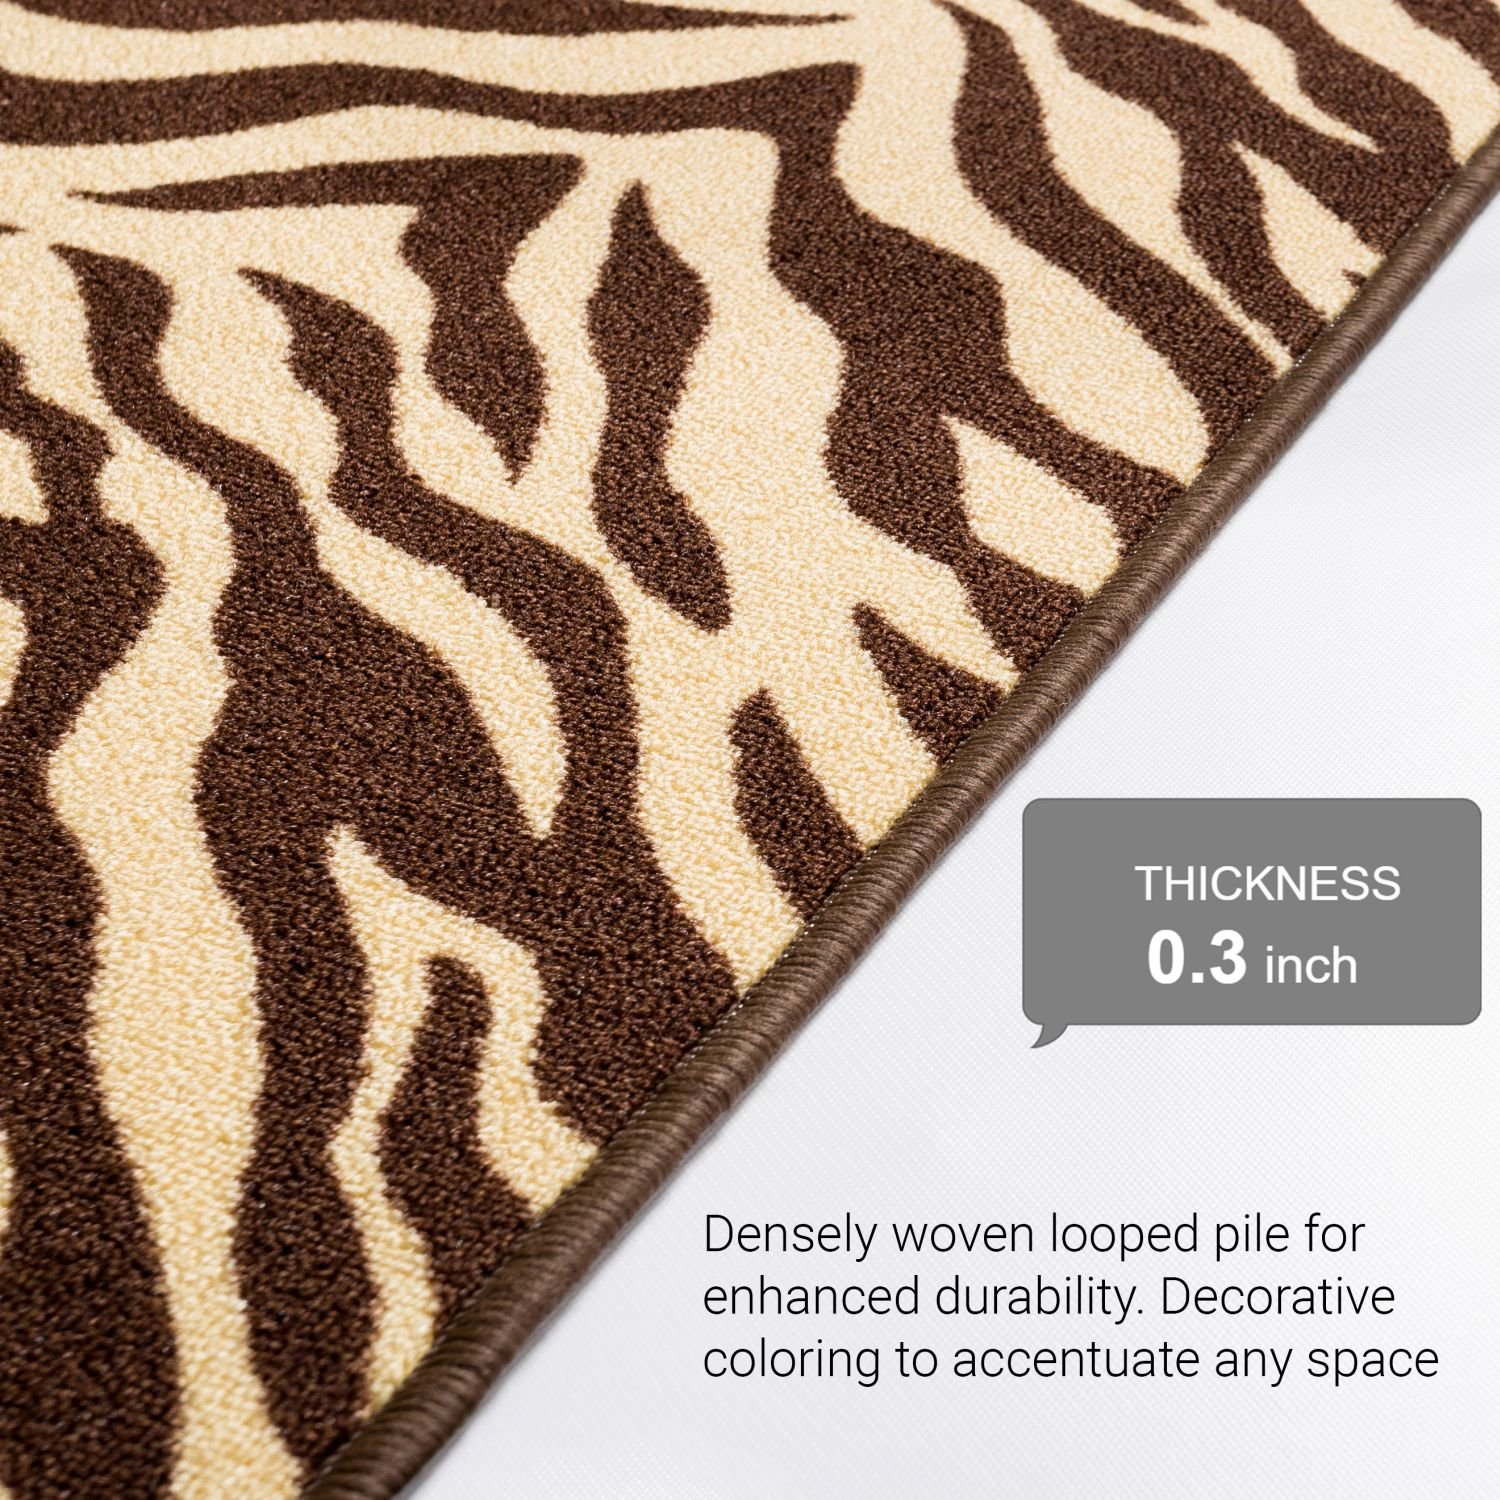 Well Woven Non-Skid Slip Rubber Back Antibacterial 2x5 (1'8'' x 5') Door Mat Runner Rug Brown Zebra Animal Print Stripes Modern Thin Low Pile Machine Washable Indoor Outdoor Kitchen Hallway Entry by Well Woven (Image #6)